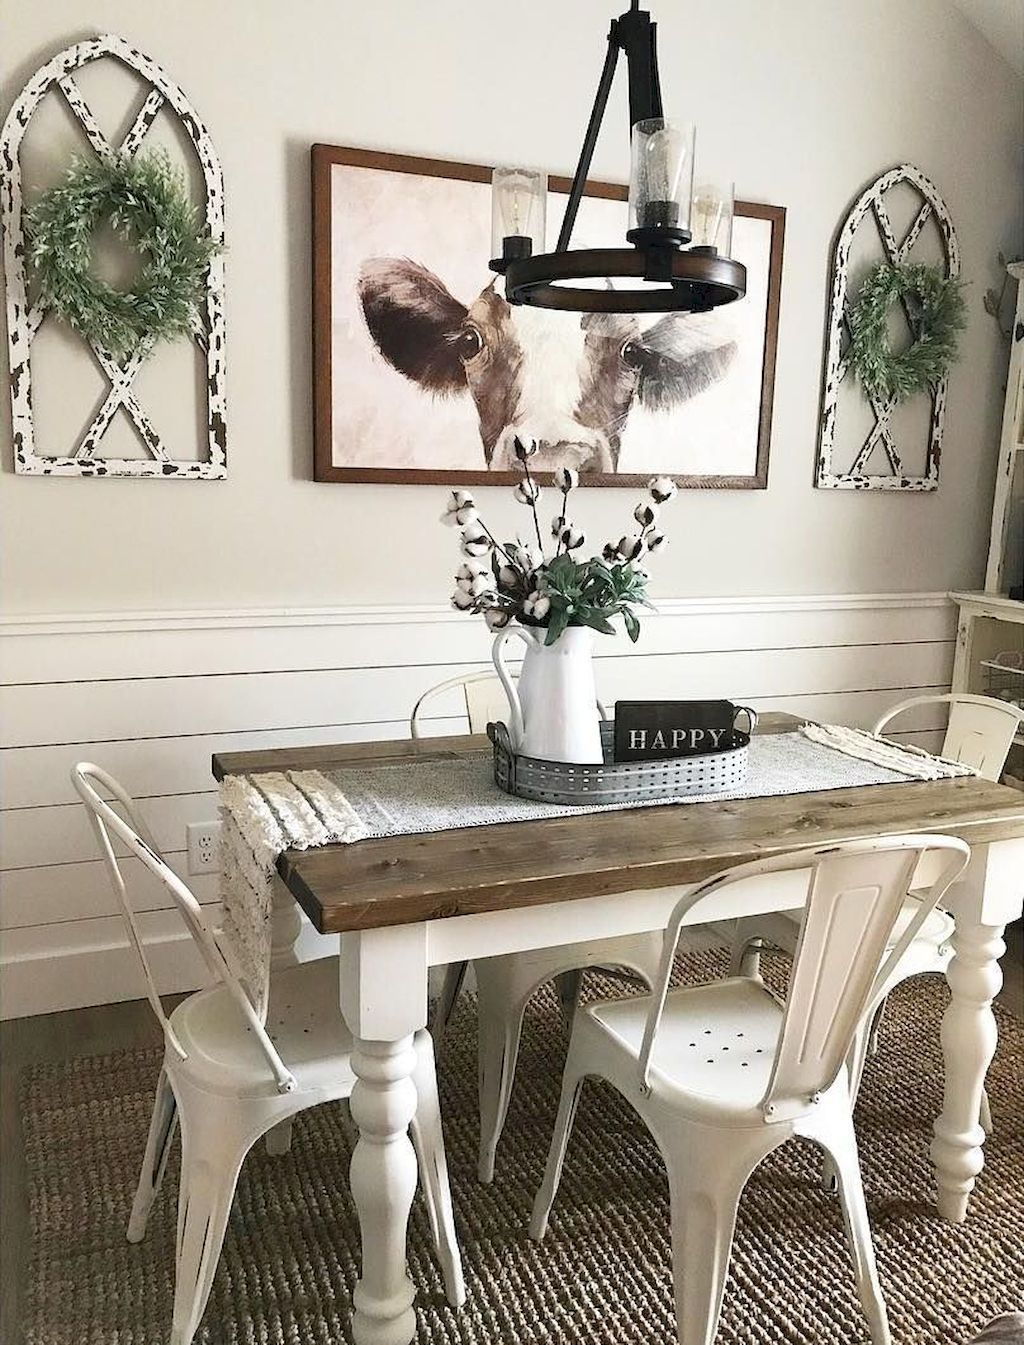 80 Beautiful Farmhouse Dining Room Table Design Ideas #farmhousekitchendecor